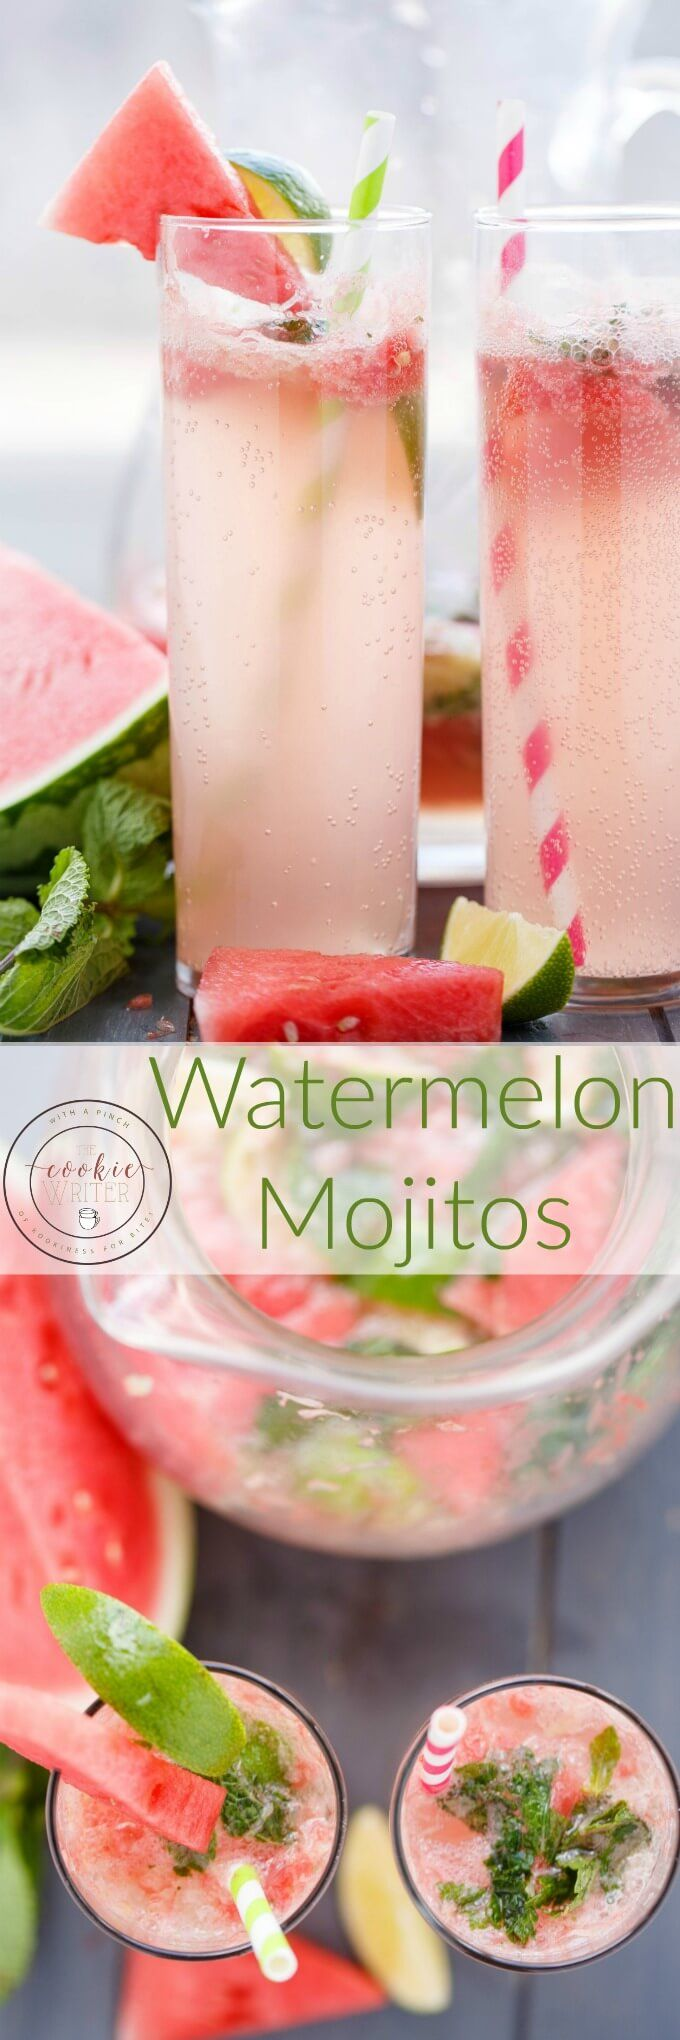 Watermelon Mojitos | http://thecookiewriter.com | @thecookiewriter | #drink